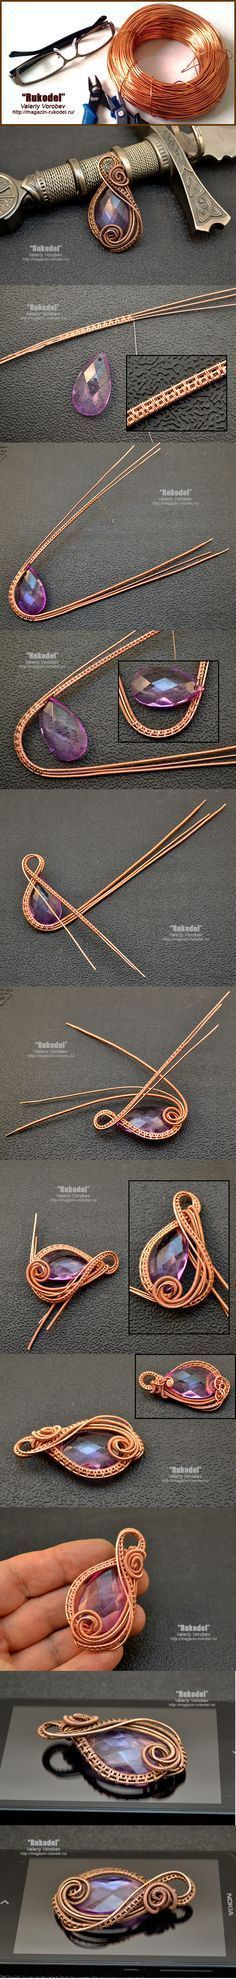 Weave wire jewelry. Photography lesson for beginners. | Crafts